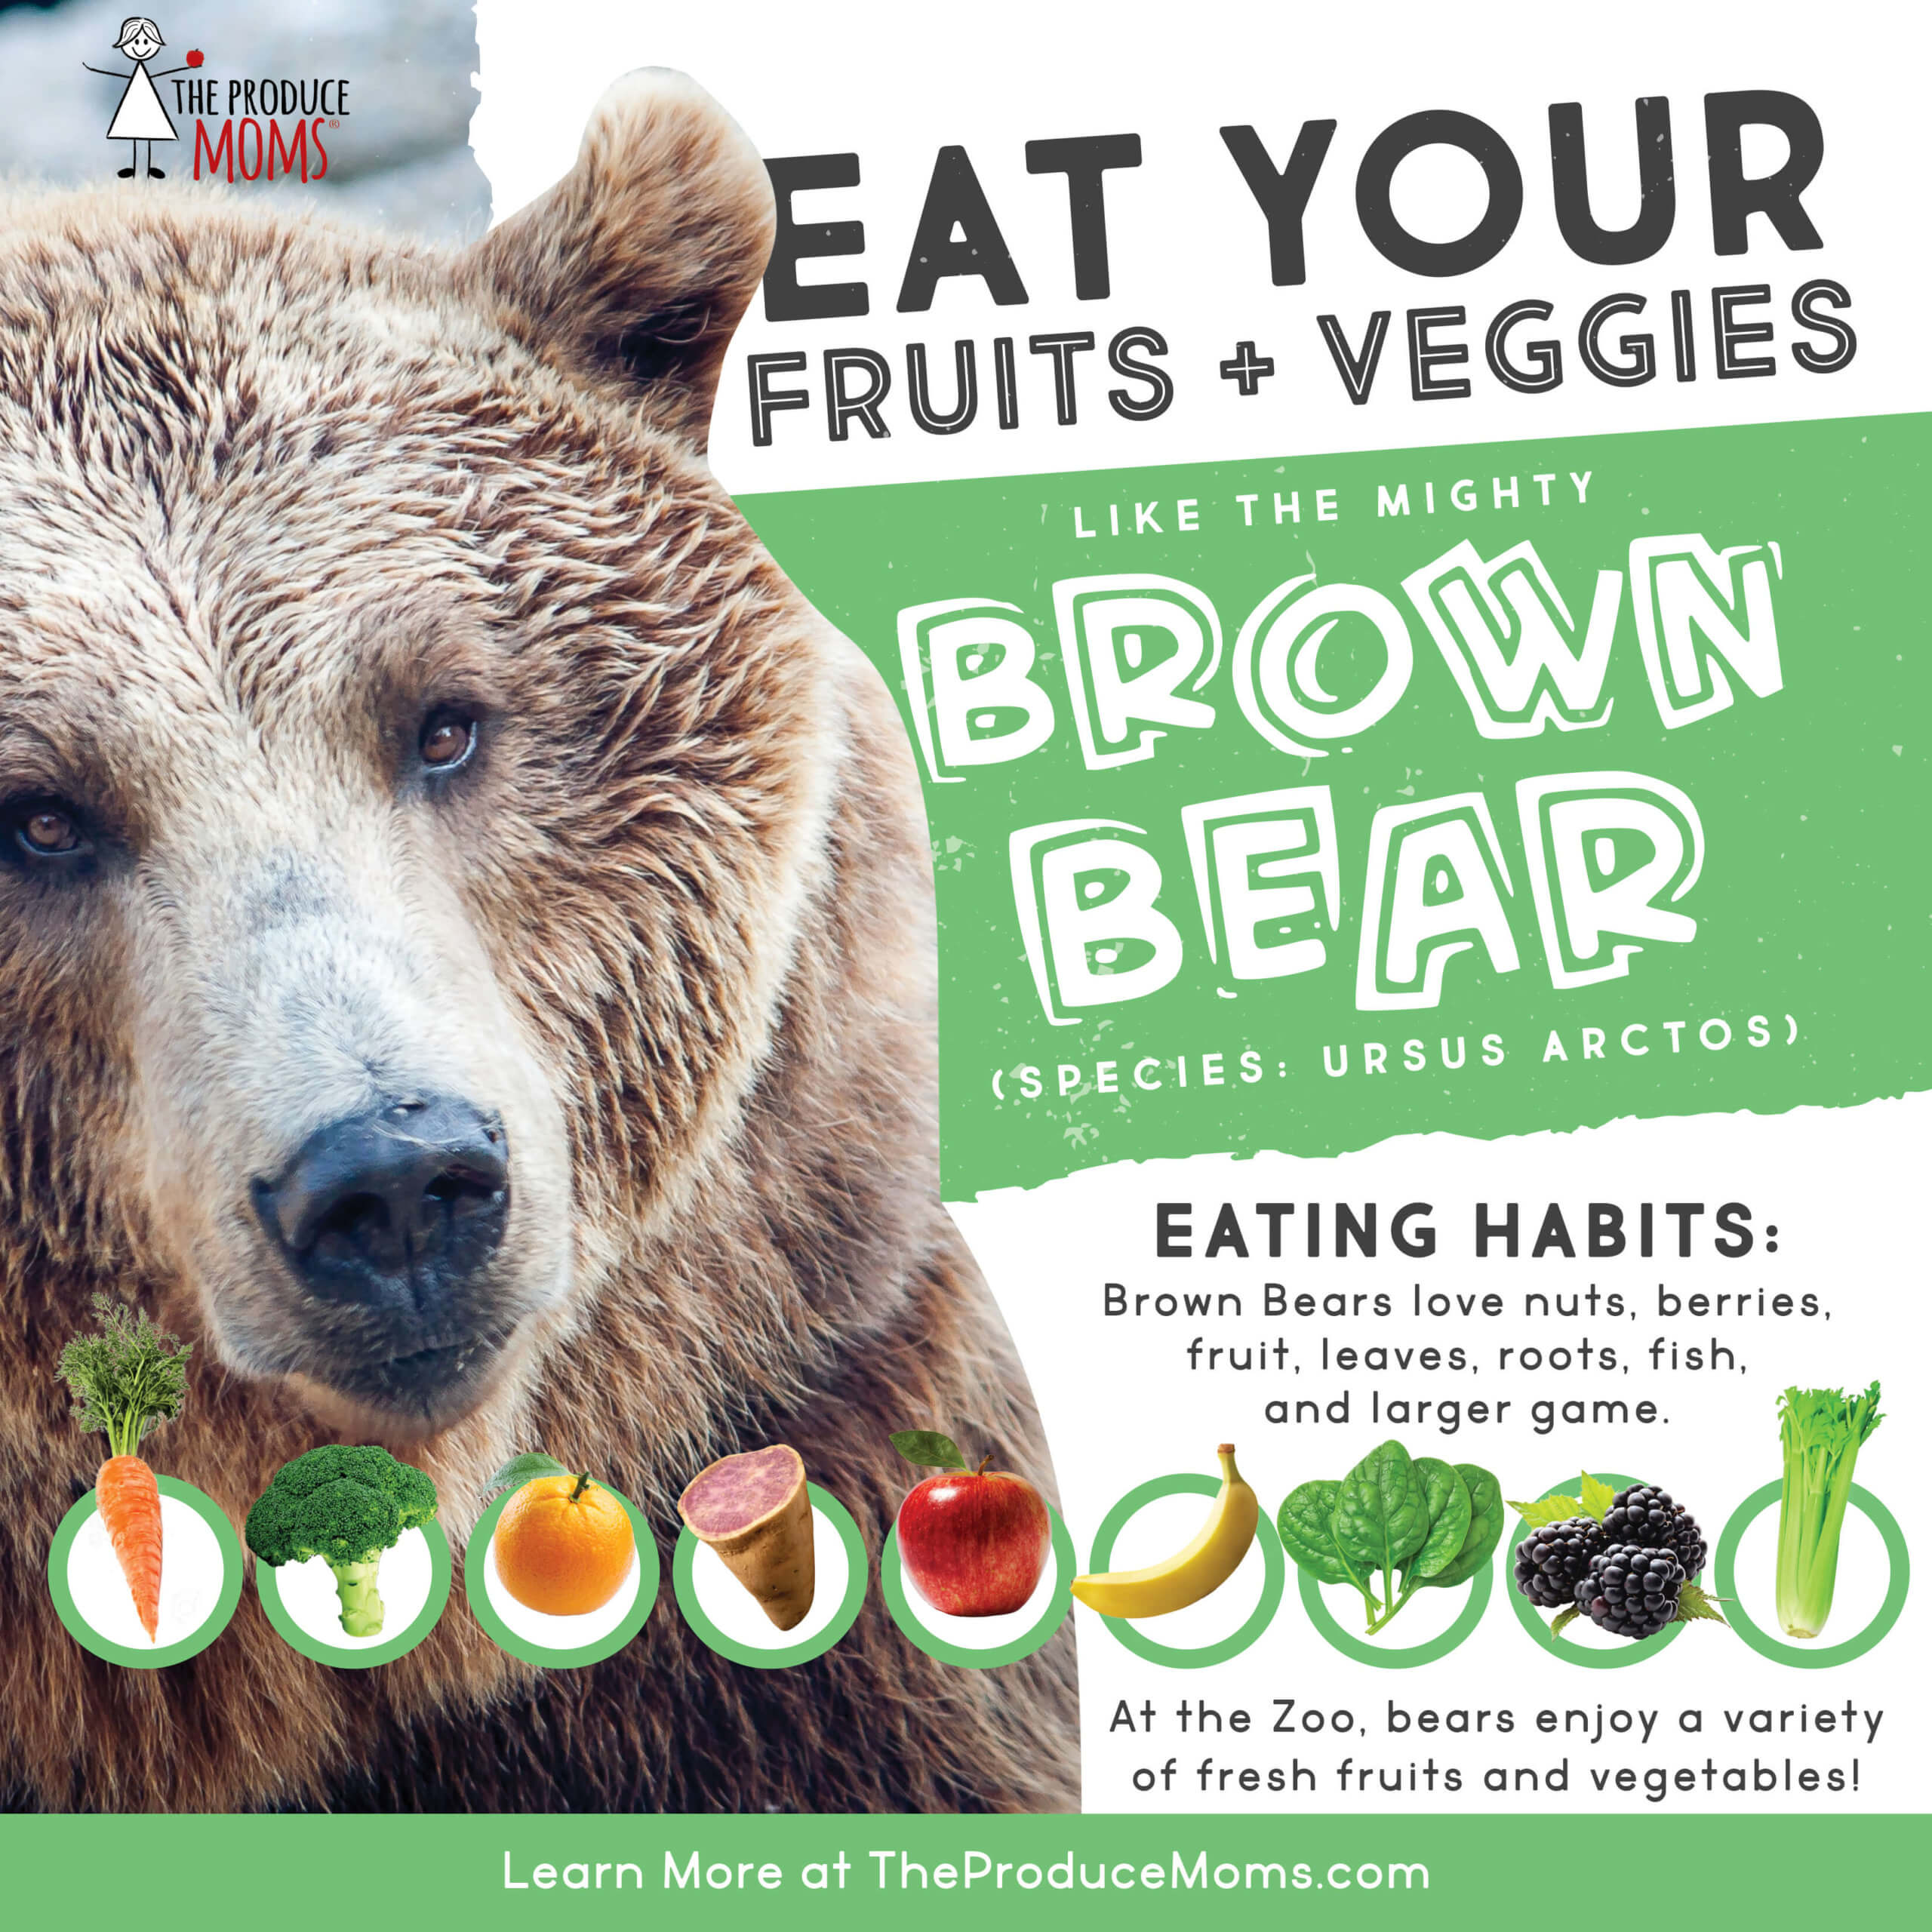 Brown Bear diet